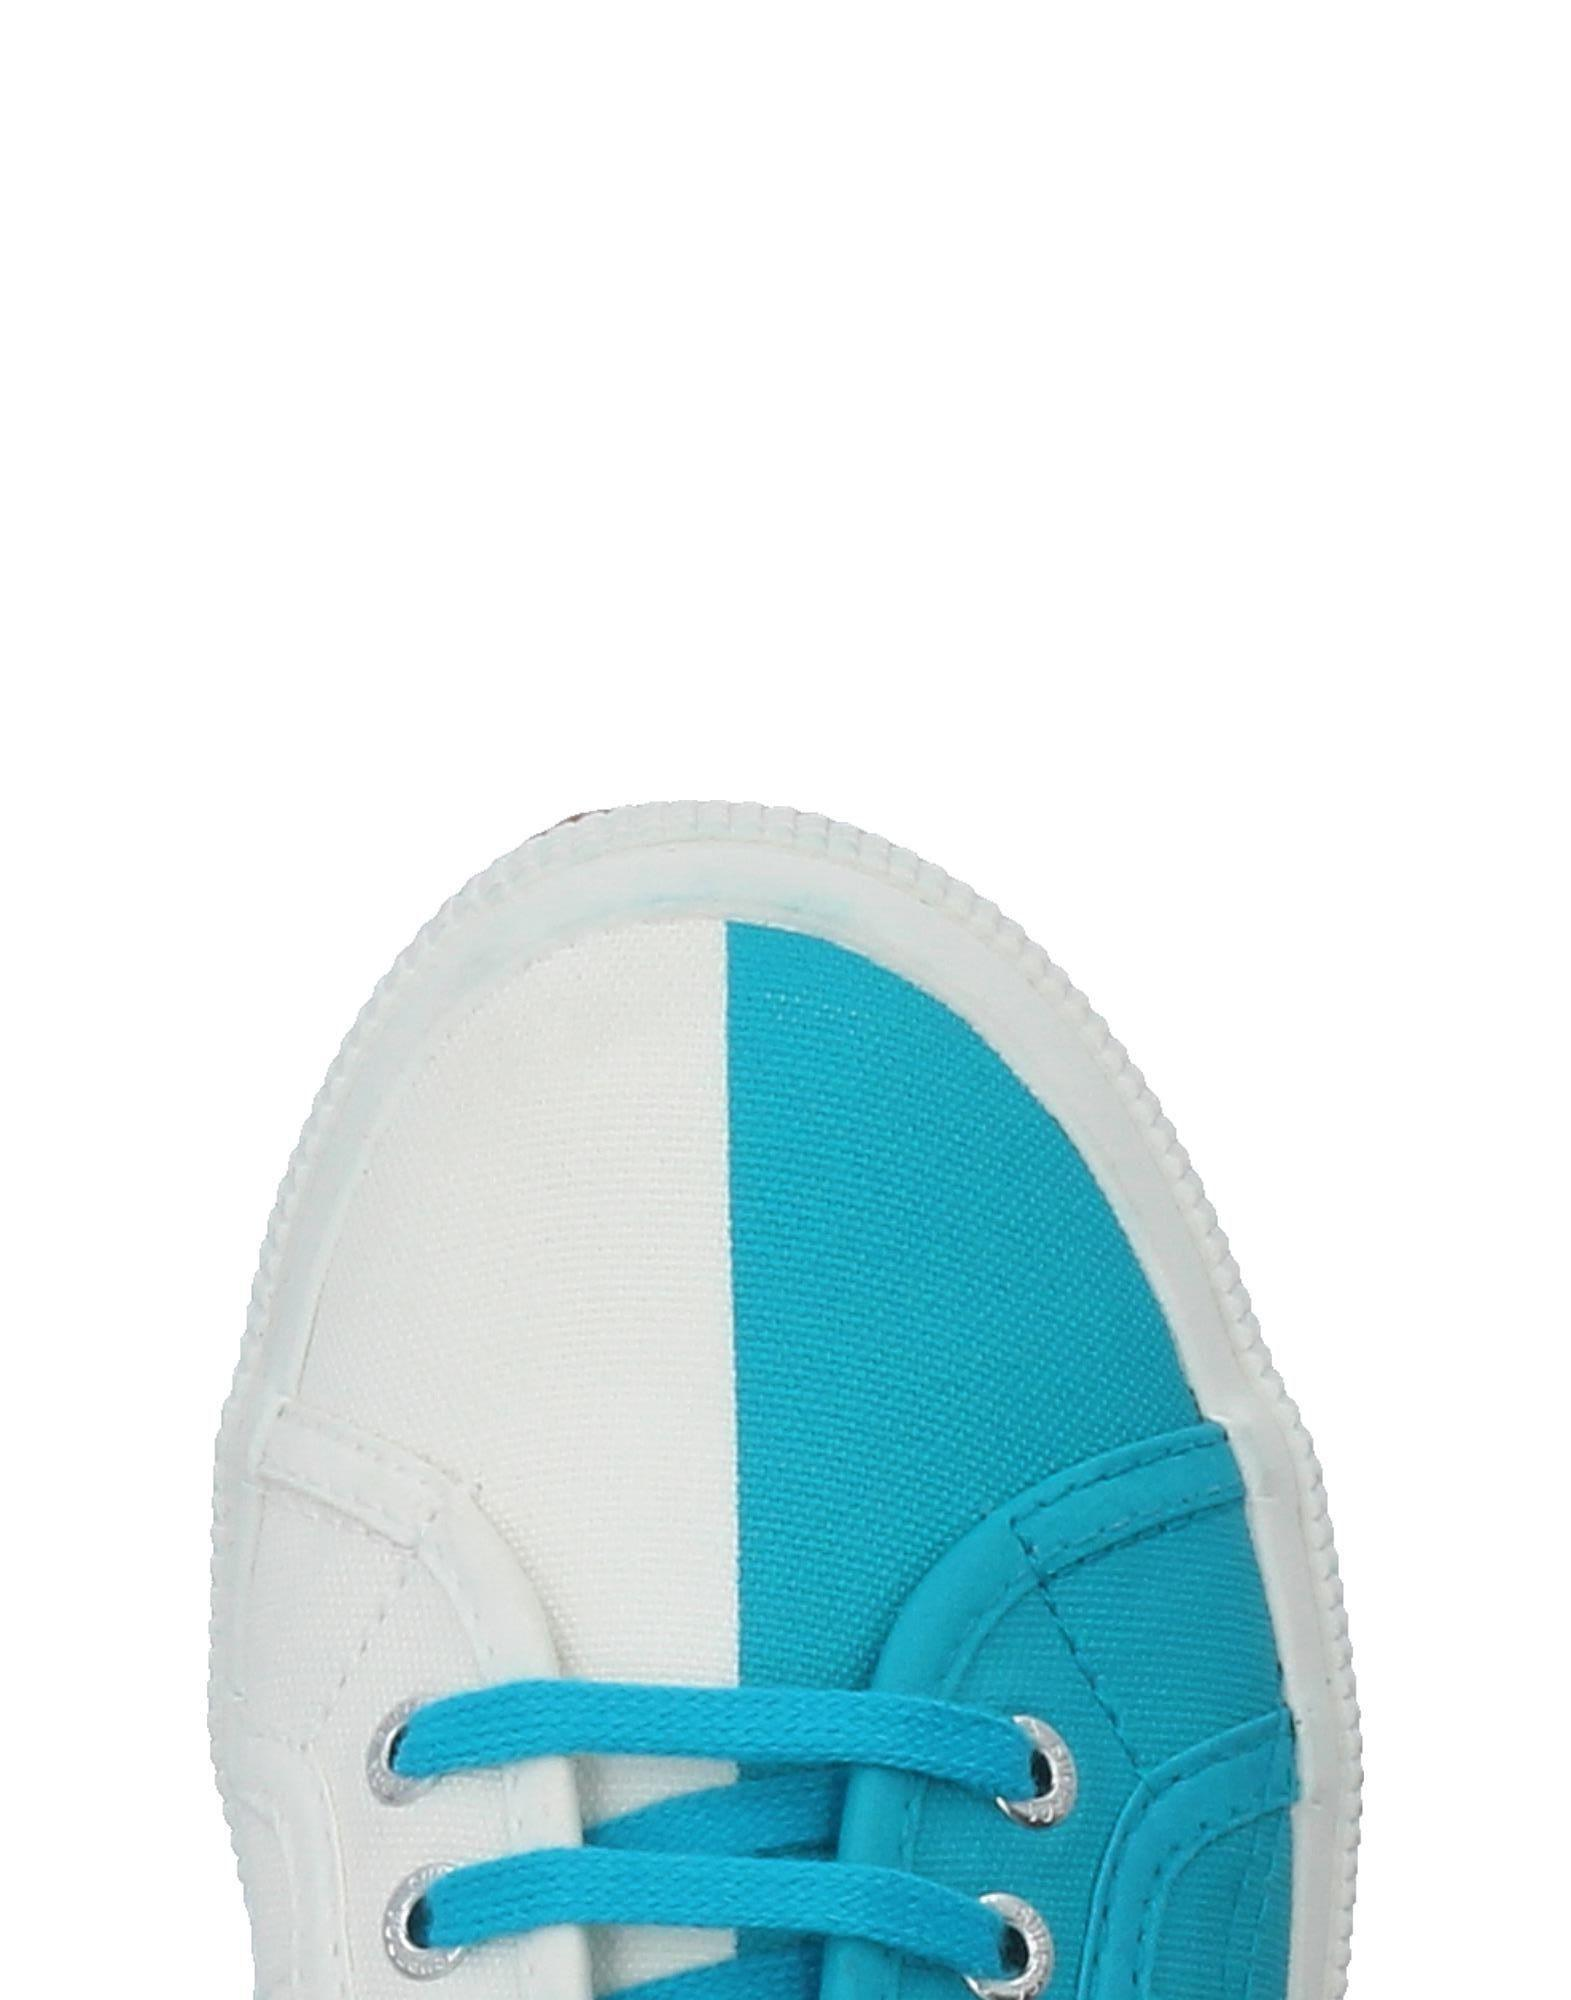 Superga Low-tops & Sneakers in Turquoise (Blue) for Men